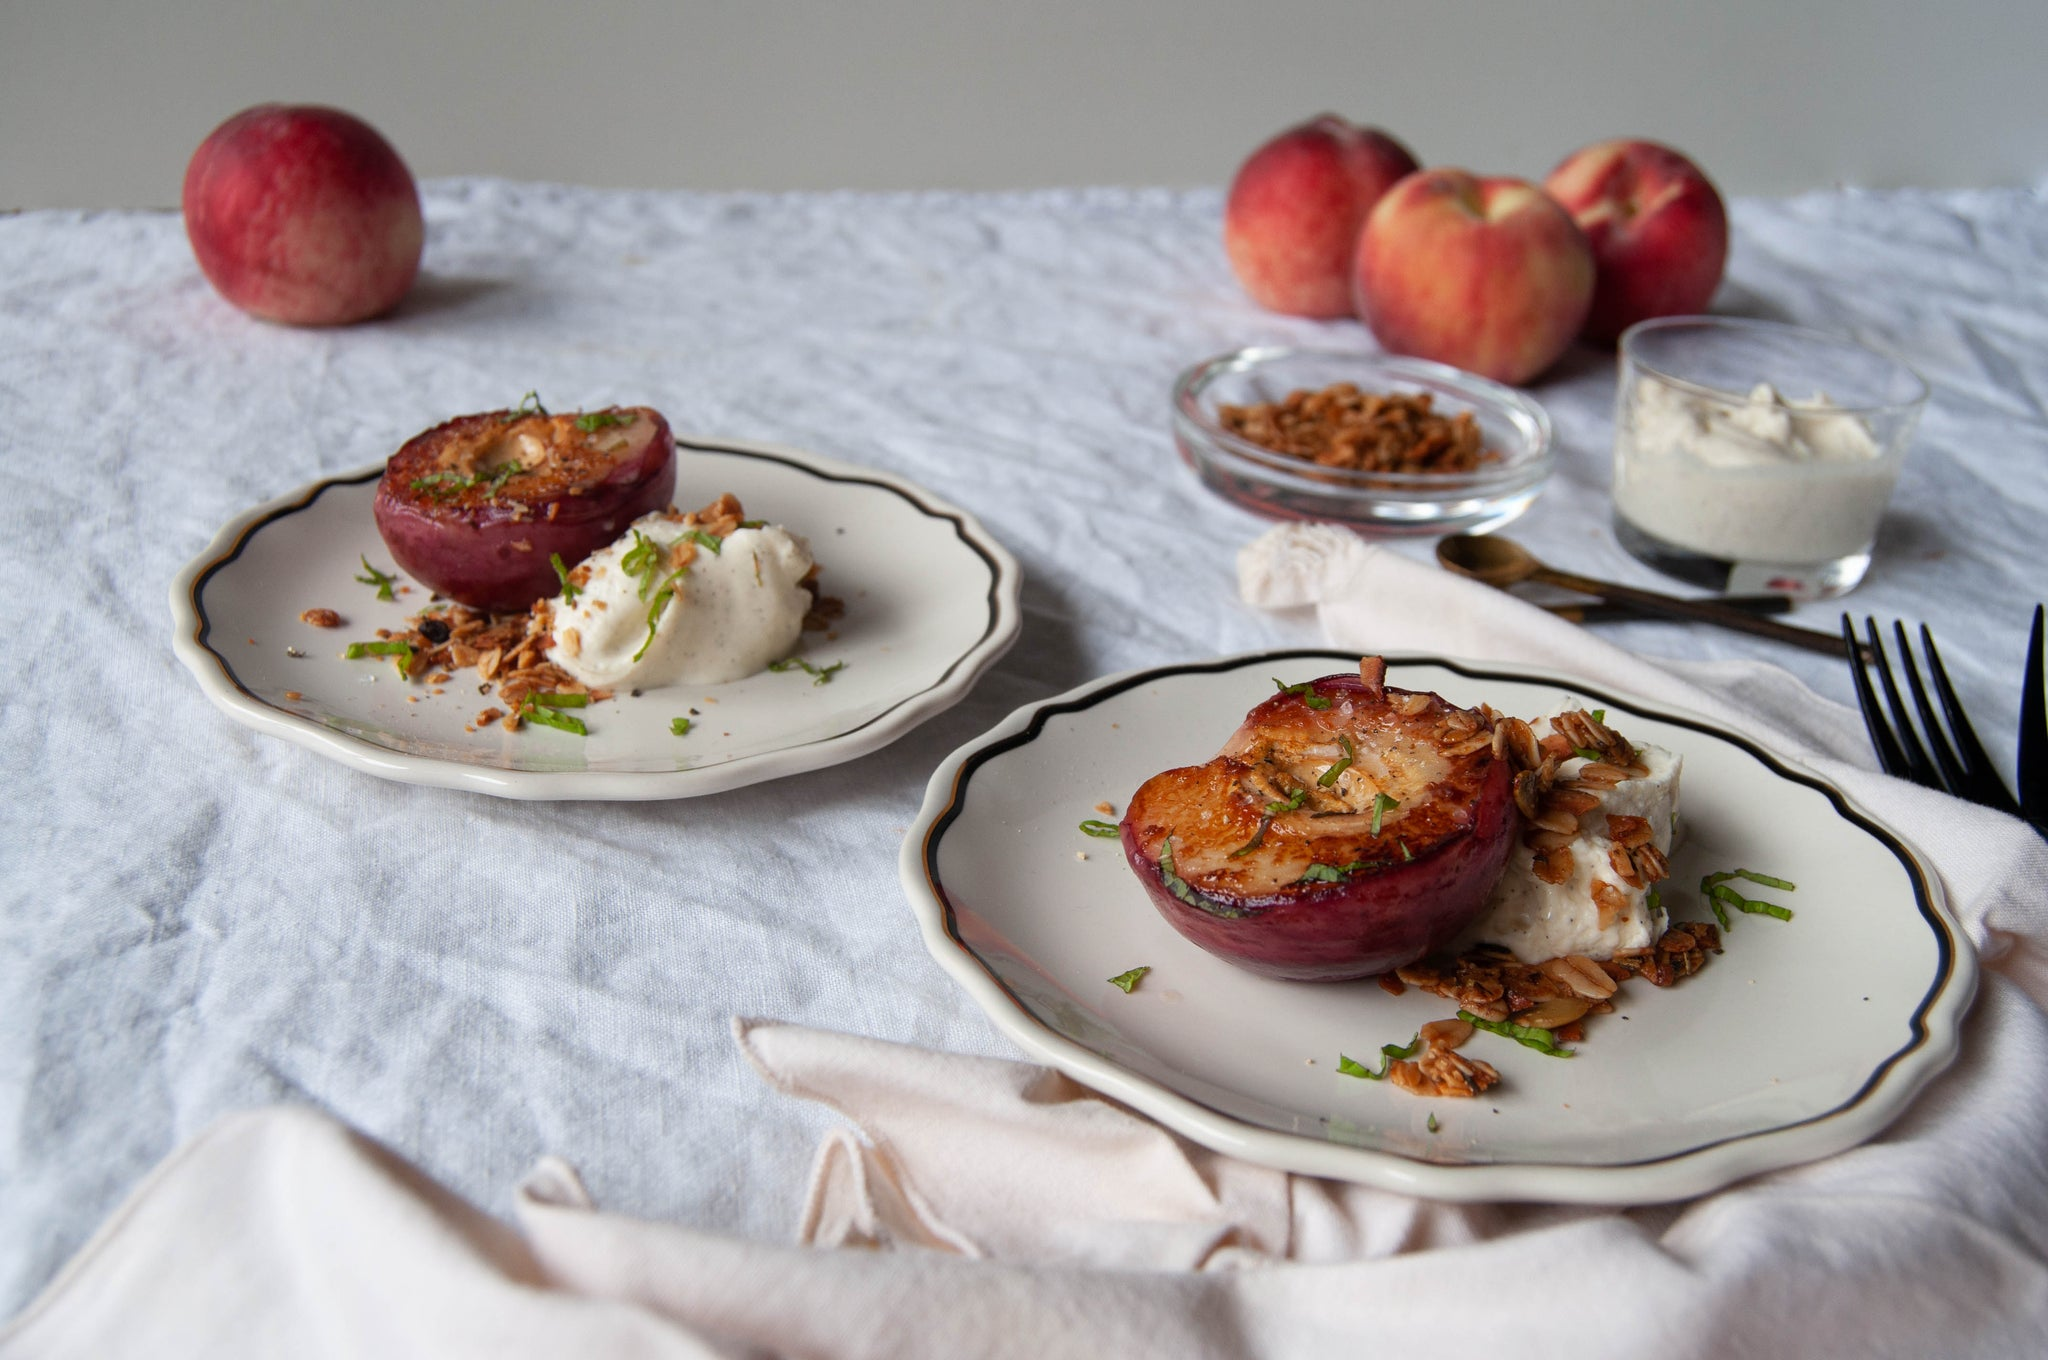 Delicious and simple grilled brown butter peaches. Served with vanilla bean creme fraiche, mint, and rosemary granola. Indulgent yet simple.